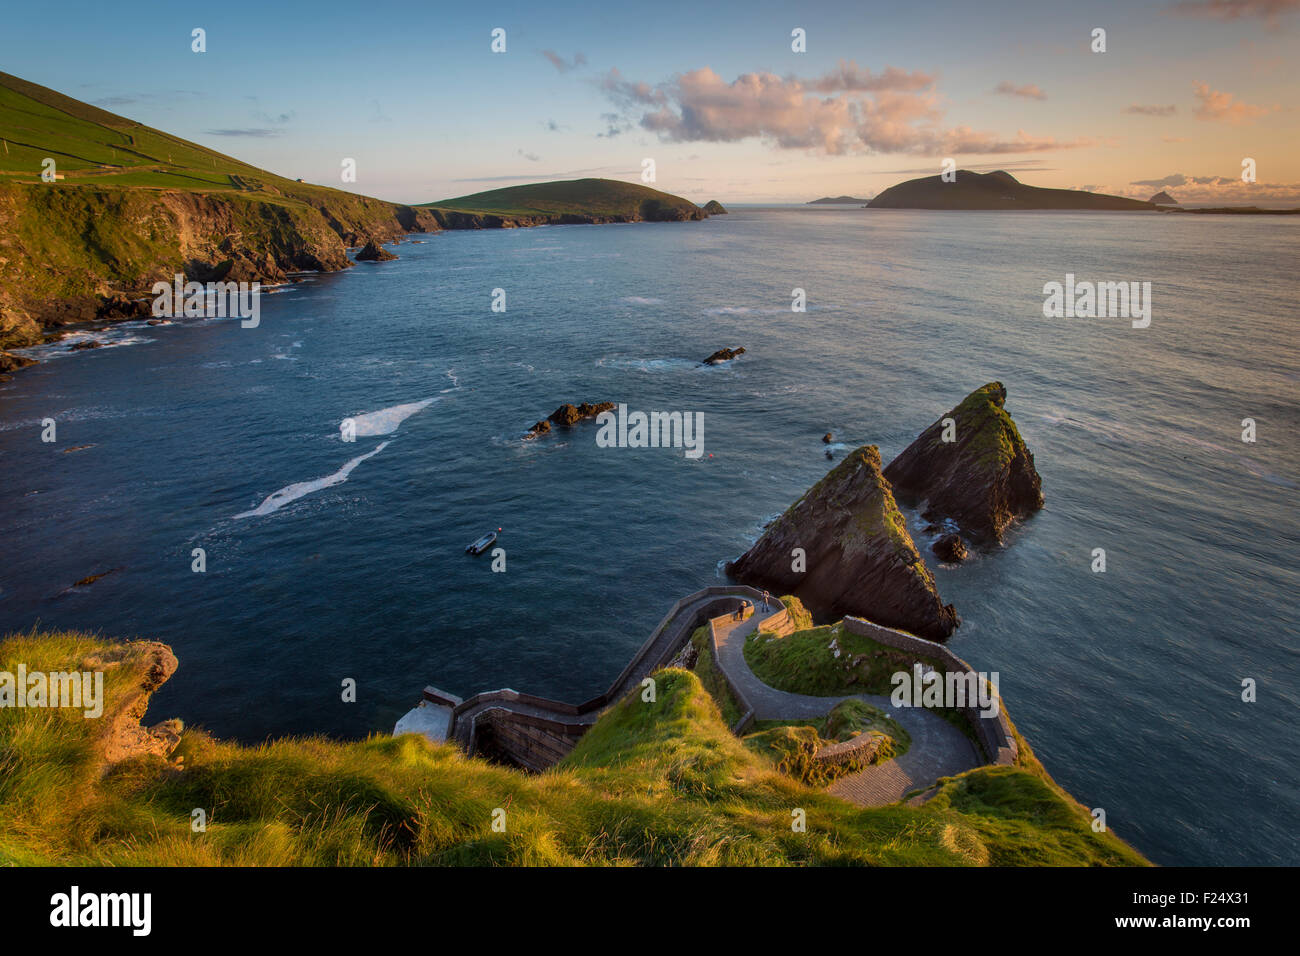 Sunset over windy road to Dunquin Harbor, Dunquin, County Kerry, Republic of Ireland - Stock Image